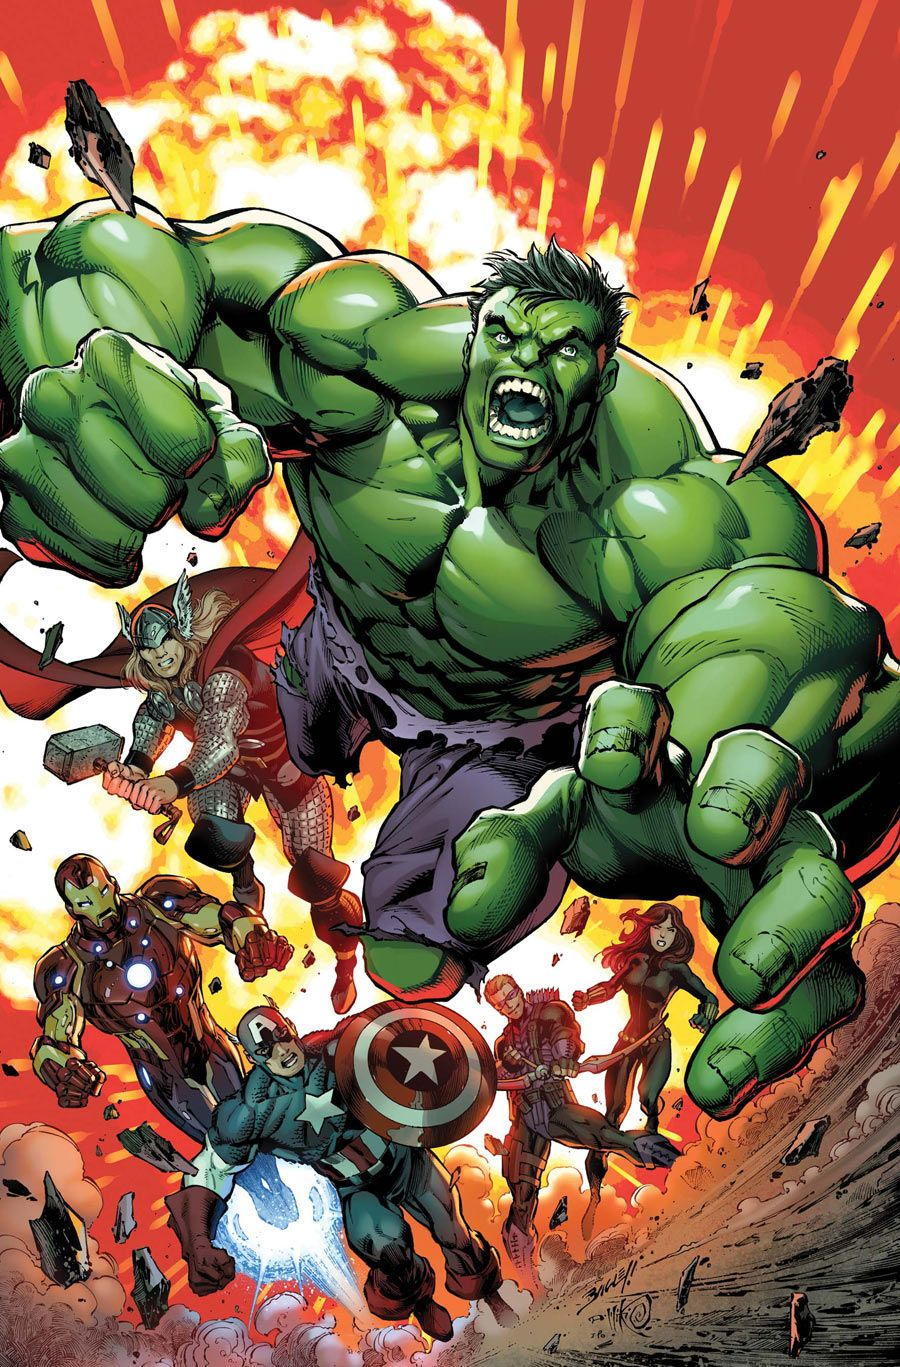 #Hulk #Fan #Art. (Avengers Assemble Vol.2 #2 Cover) By: Mark Bagley. (THE * 5 * STÅR * ÅWARD * OF: * AW YEAH, IT'S MAJOR ÅWESOMENESS!!!™) ÅÅÅ+